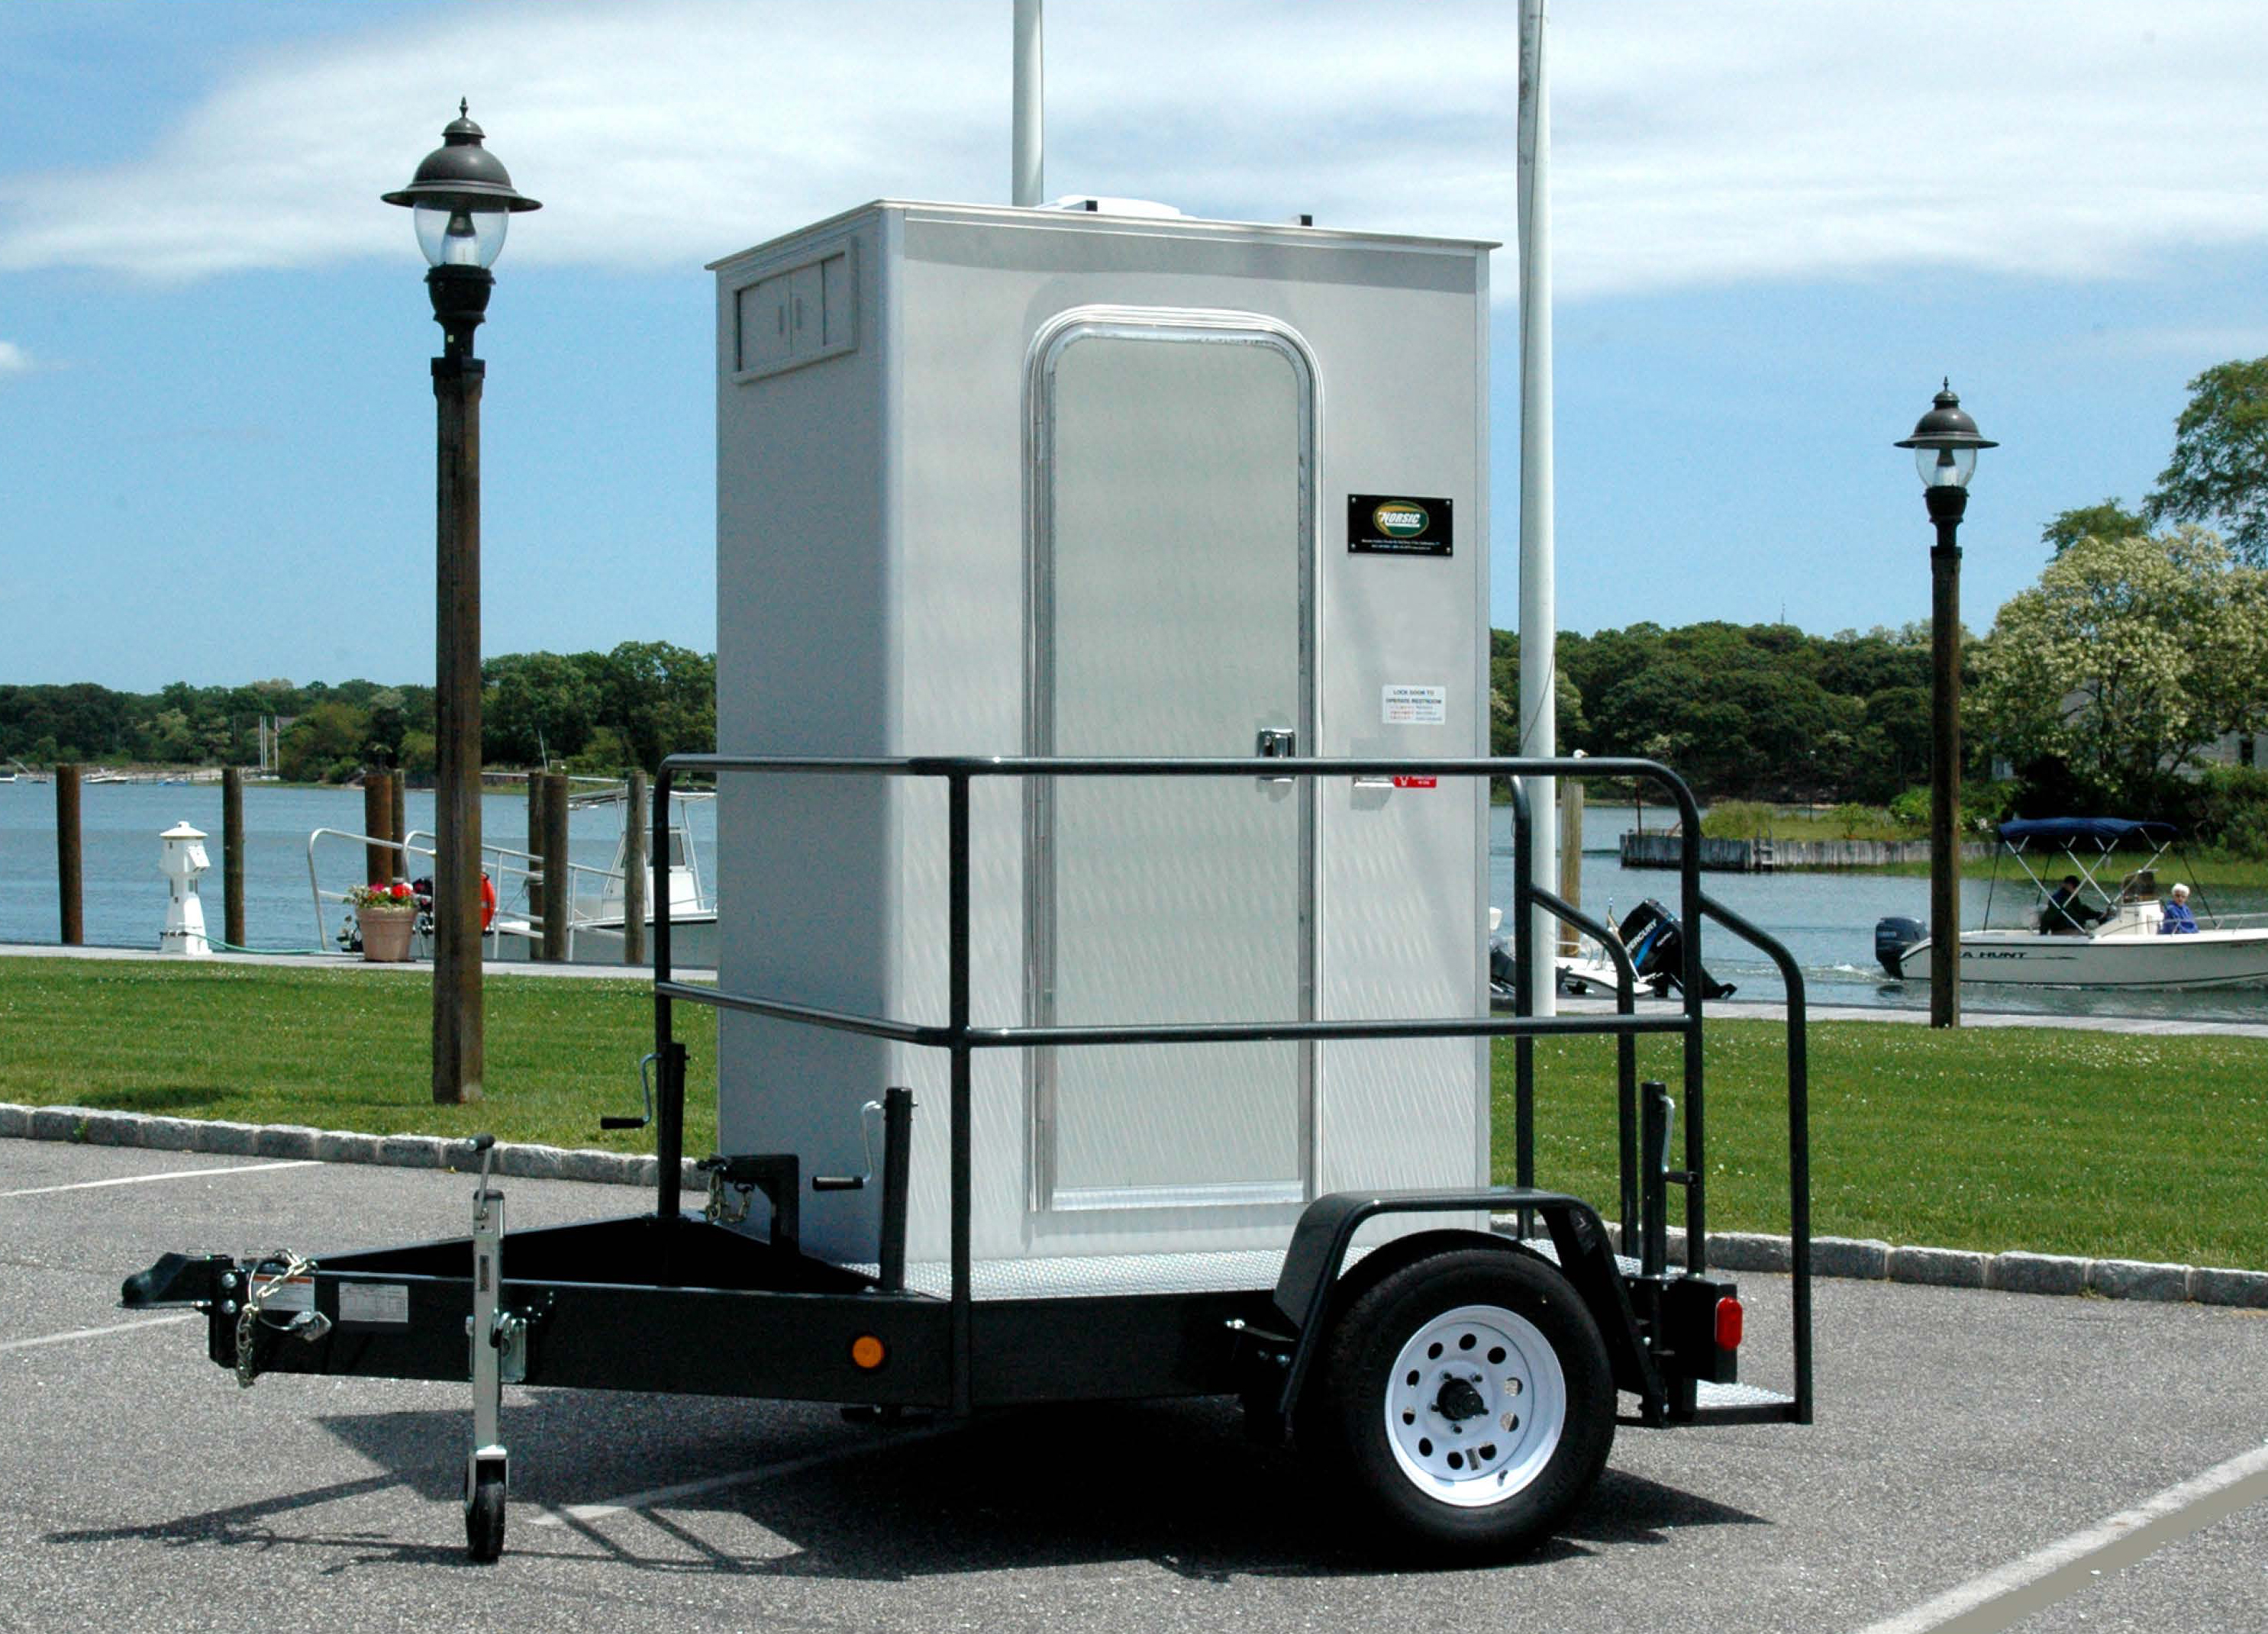 all features of is top series line enjoy mobile for in large service except bathroom clinkscales one stall septic our restrooms restroom toilets units a elegance img the elegant trailers portable